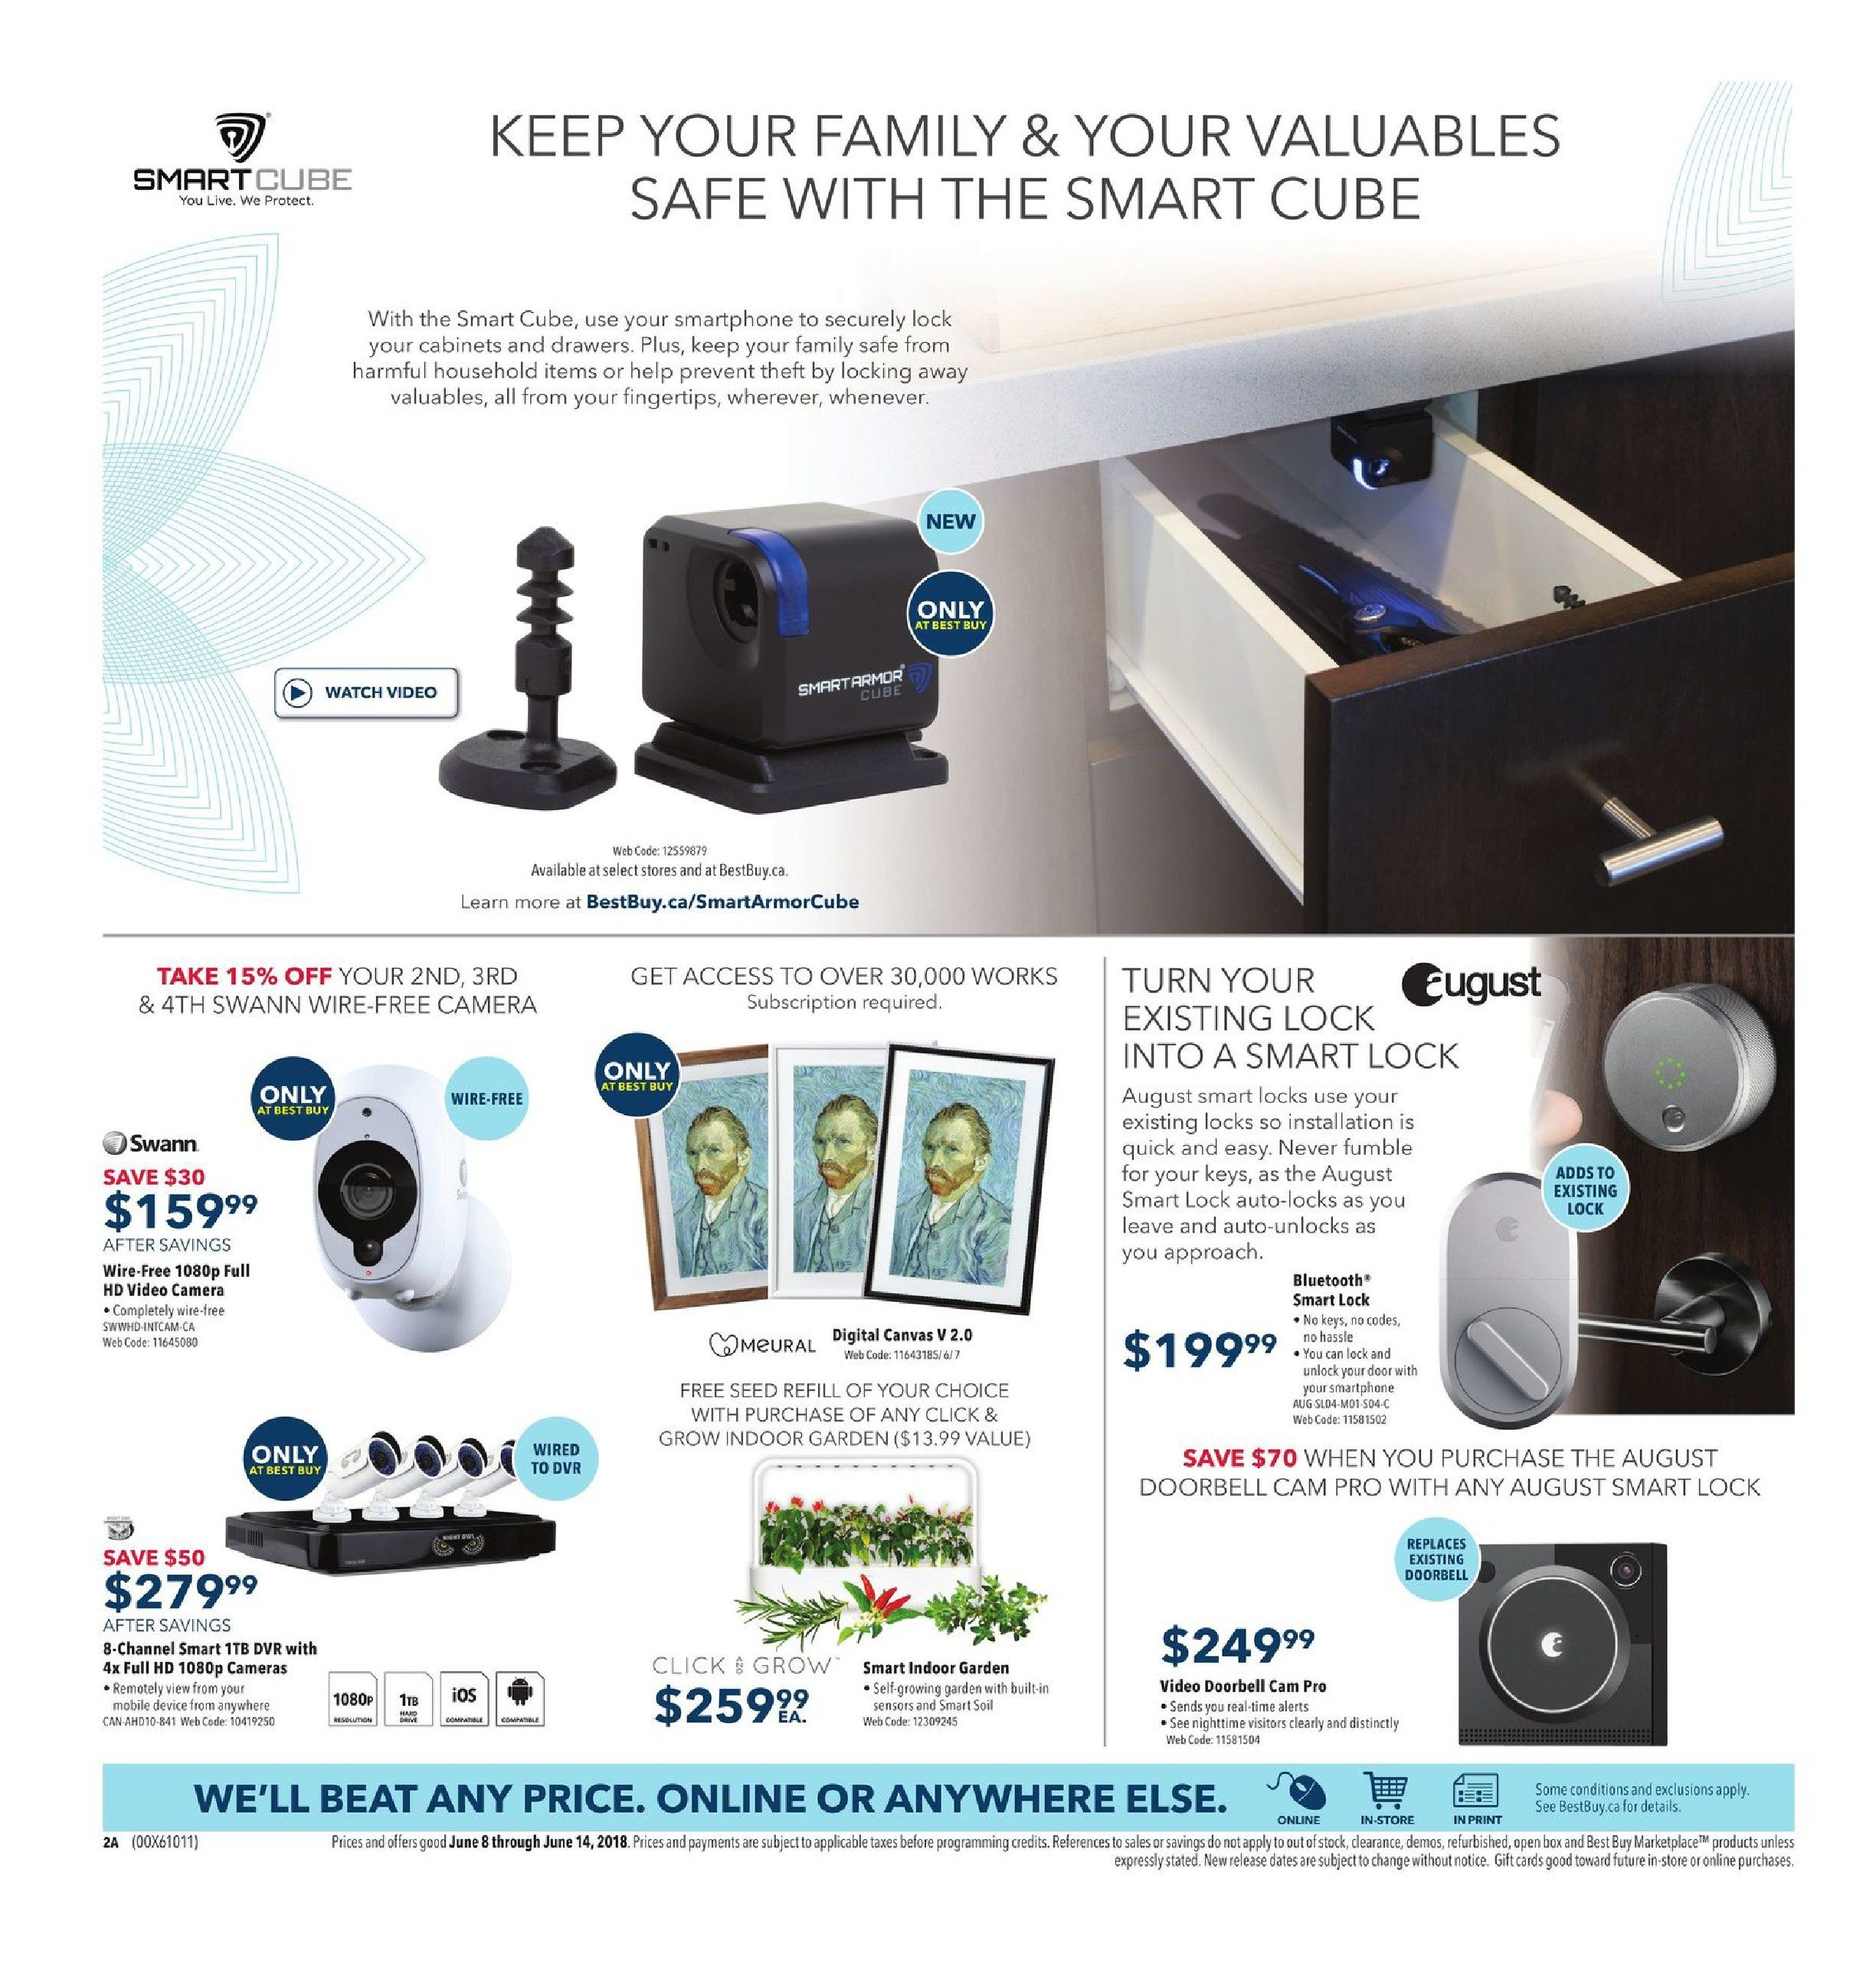 Best buy weekly flyer weekly surprise dad with amazing deals best buy weekly flyer weekly surprise dad with amazing deals jun 8 14 redflagdeals fandeluxe Images